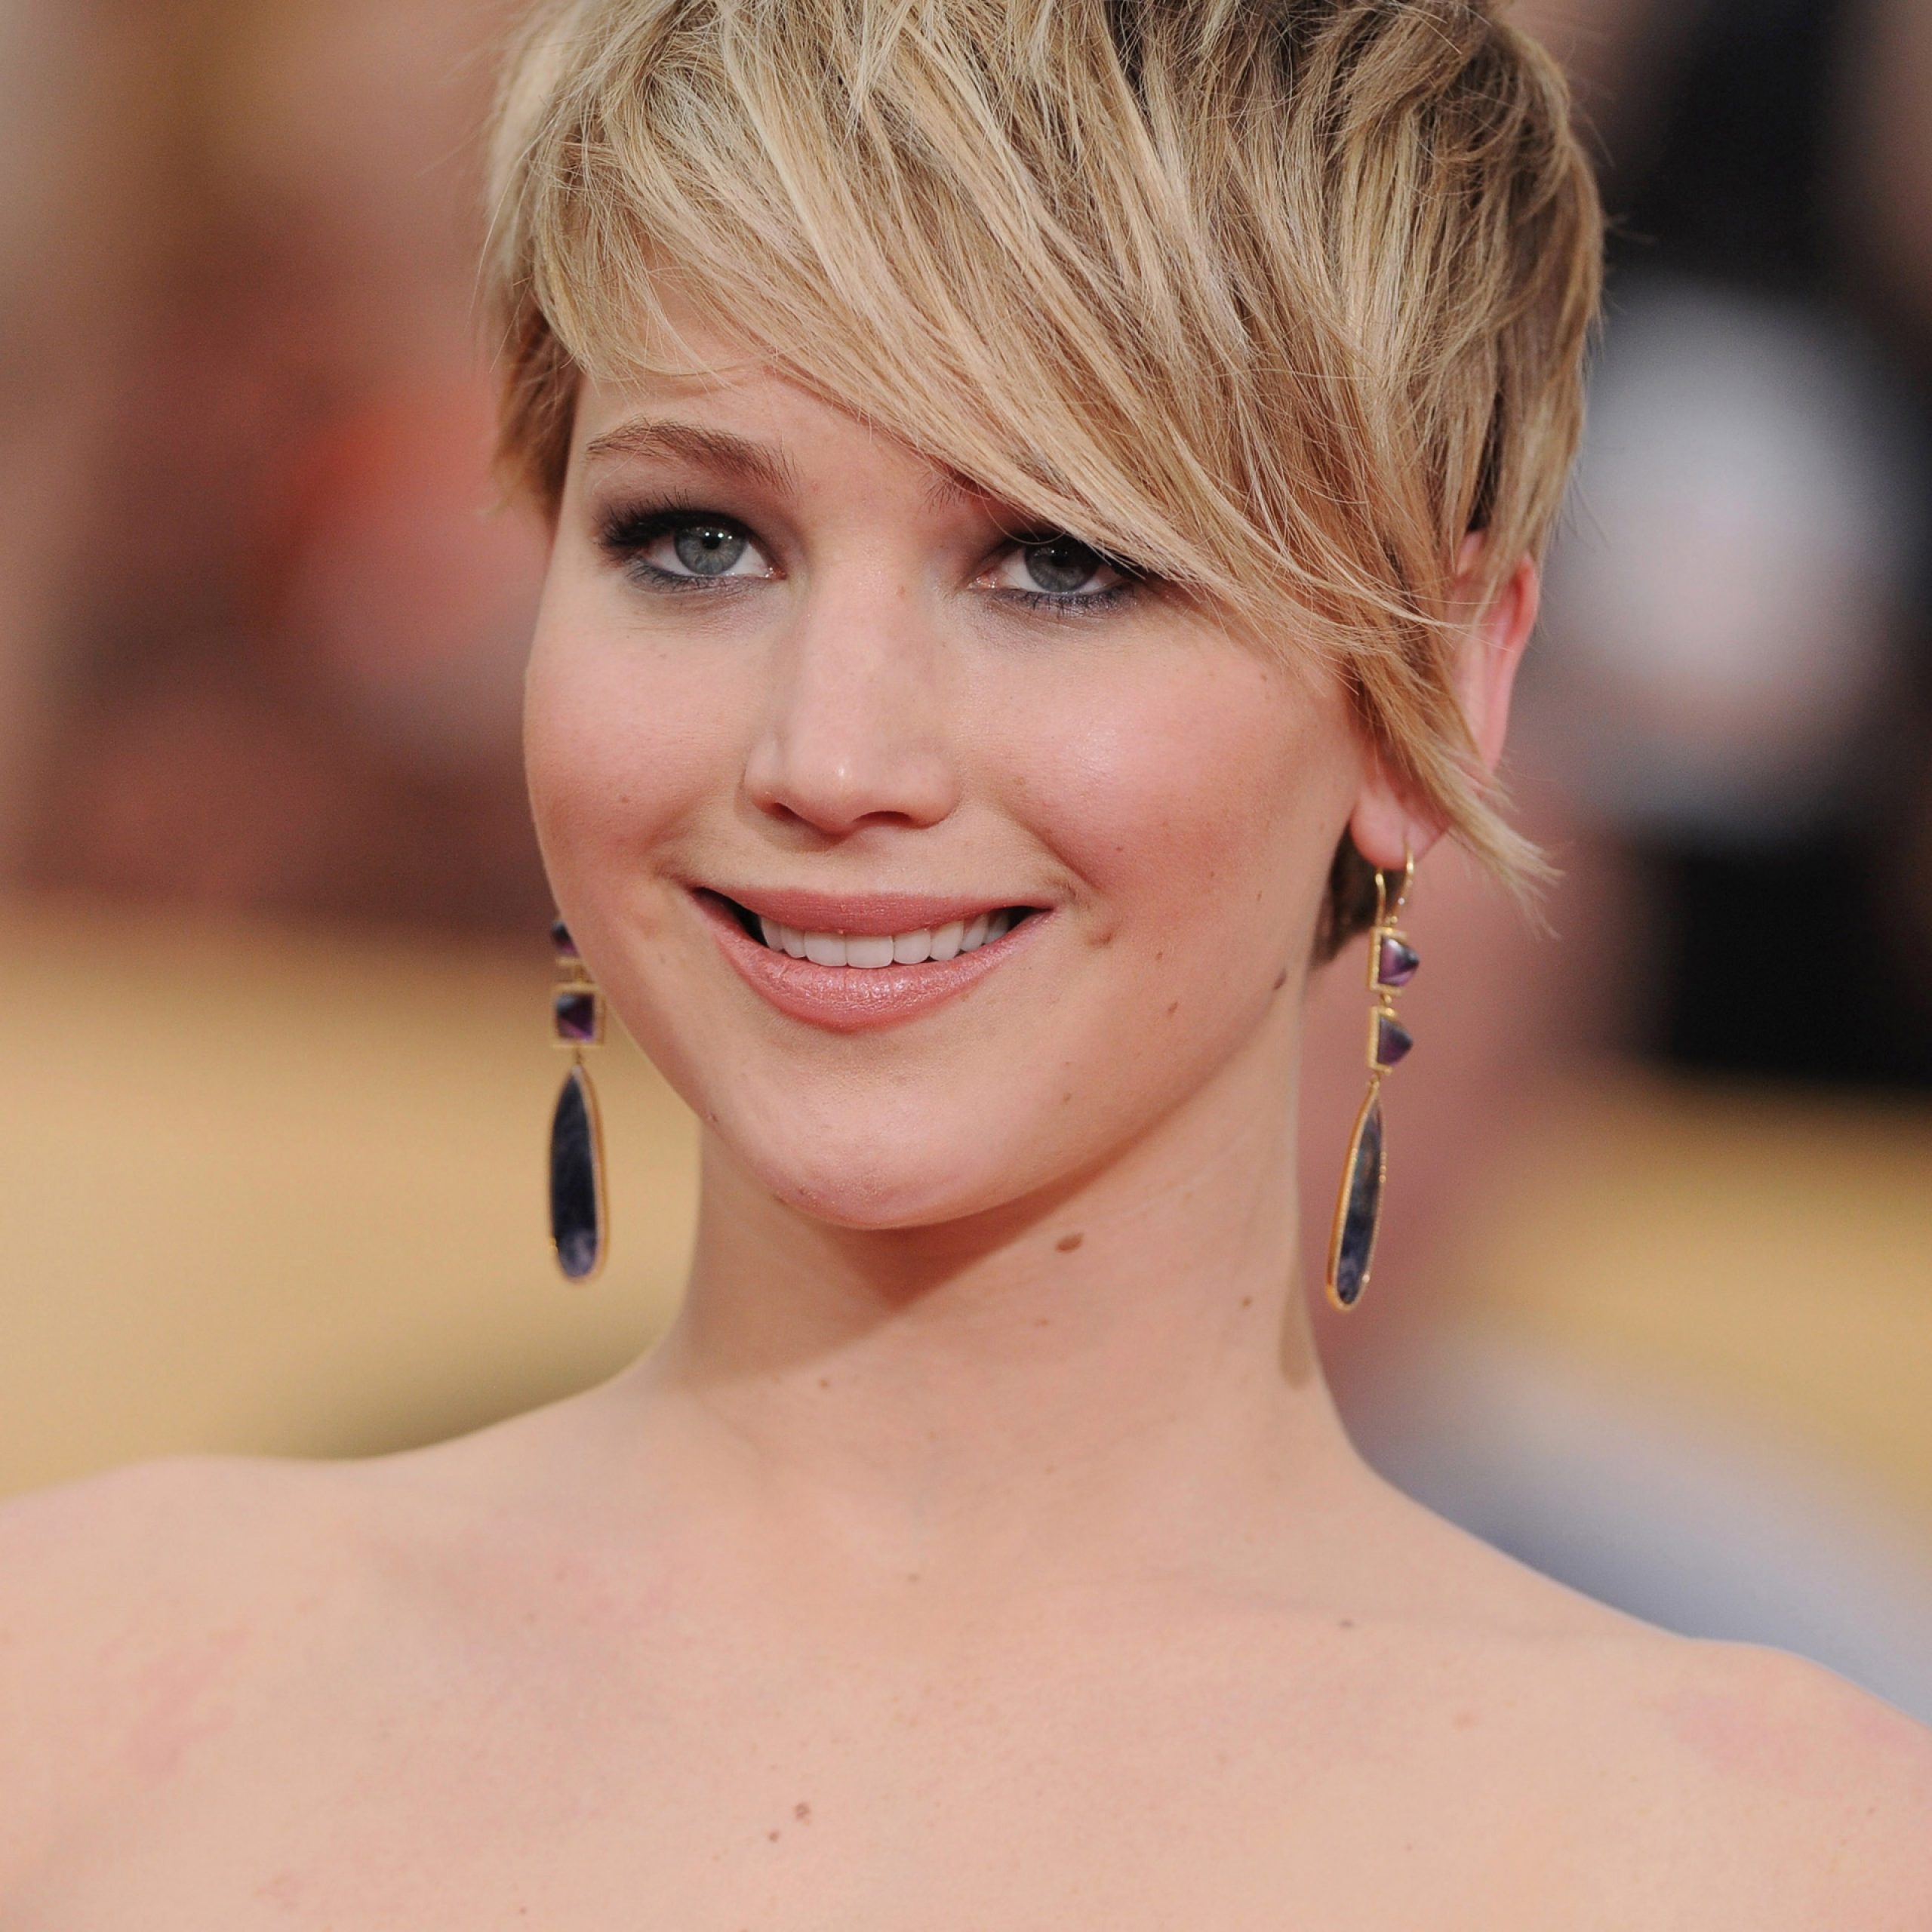 The Right Pixie Cut For Your Face Shape – Sheknows With Regard To Cropped Pixie Haircuts For A Round Face (View 17 of 20)